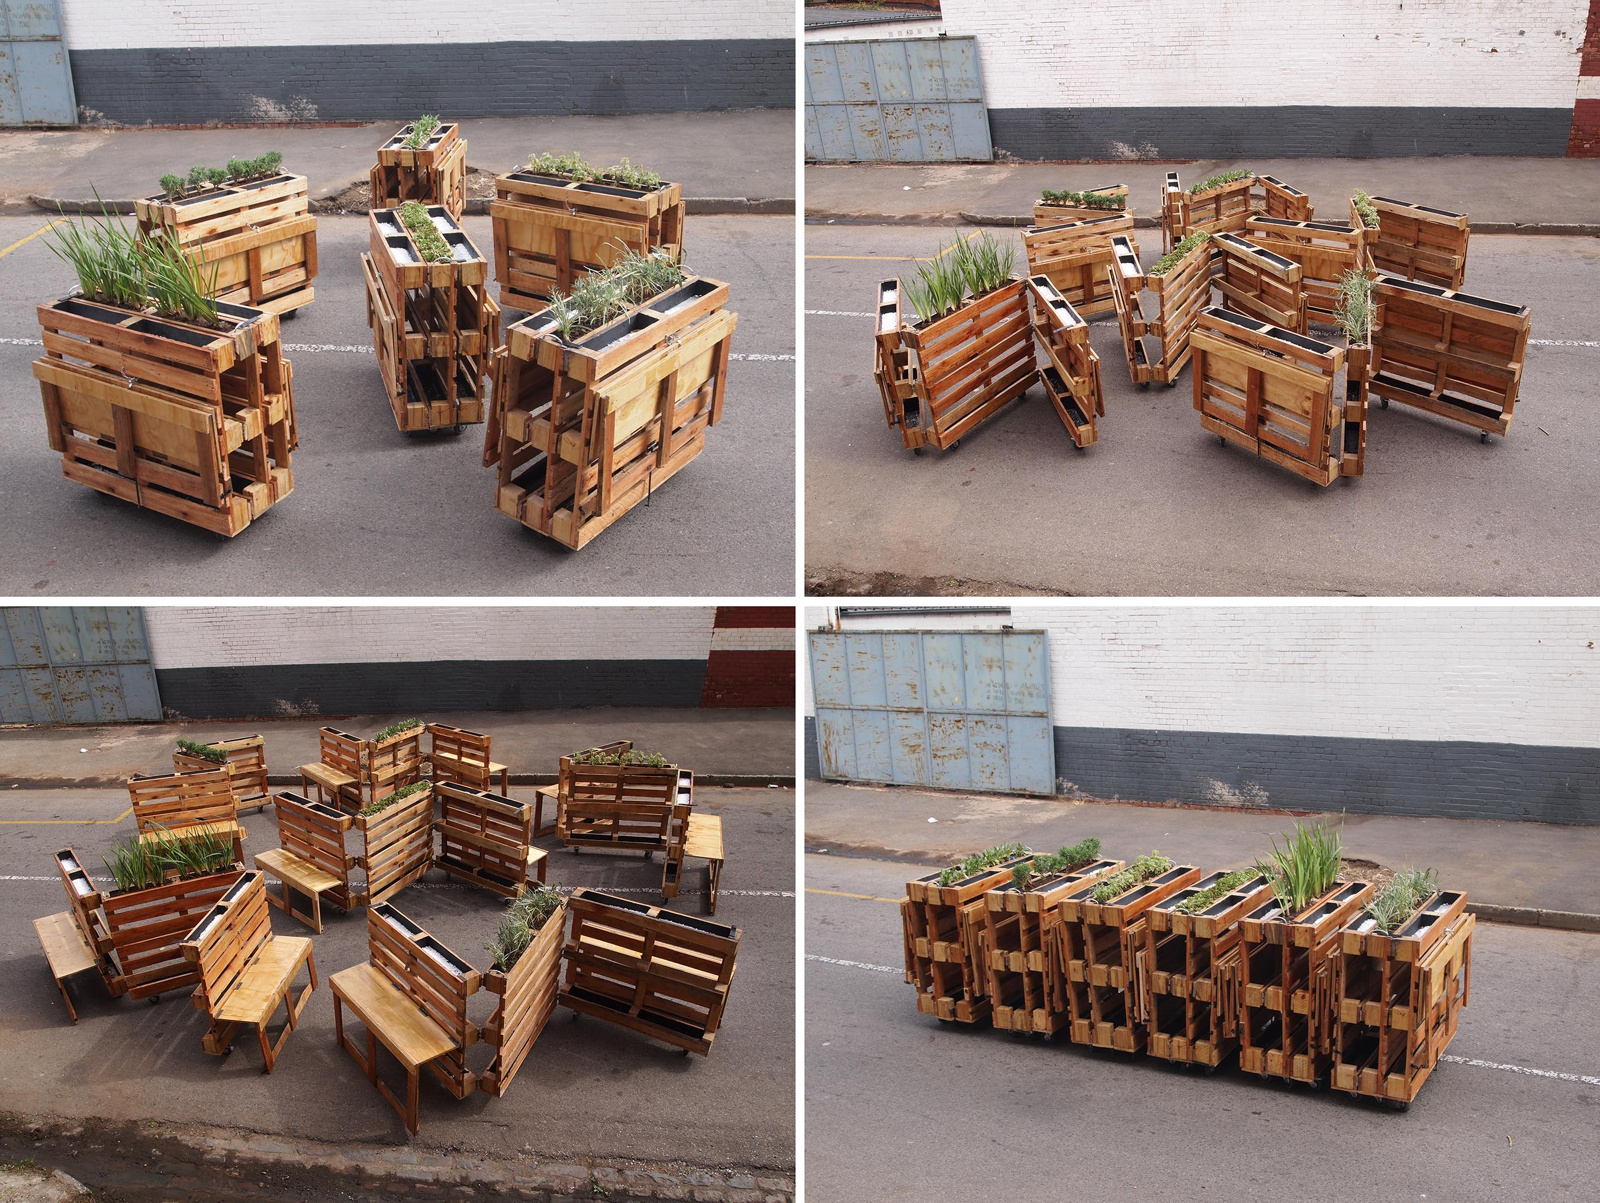 Brothers In Benches Urban Furniture With Recycled Pallets Street  # Muebles Reiclados